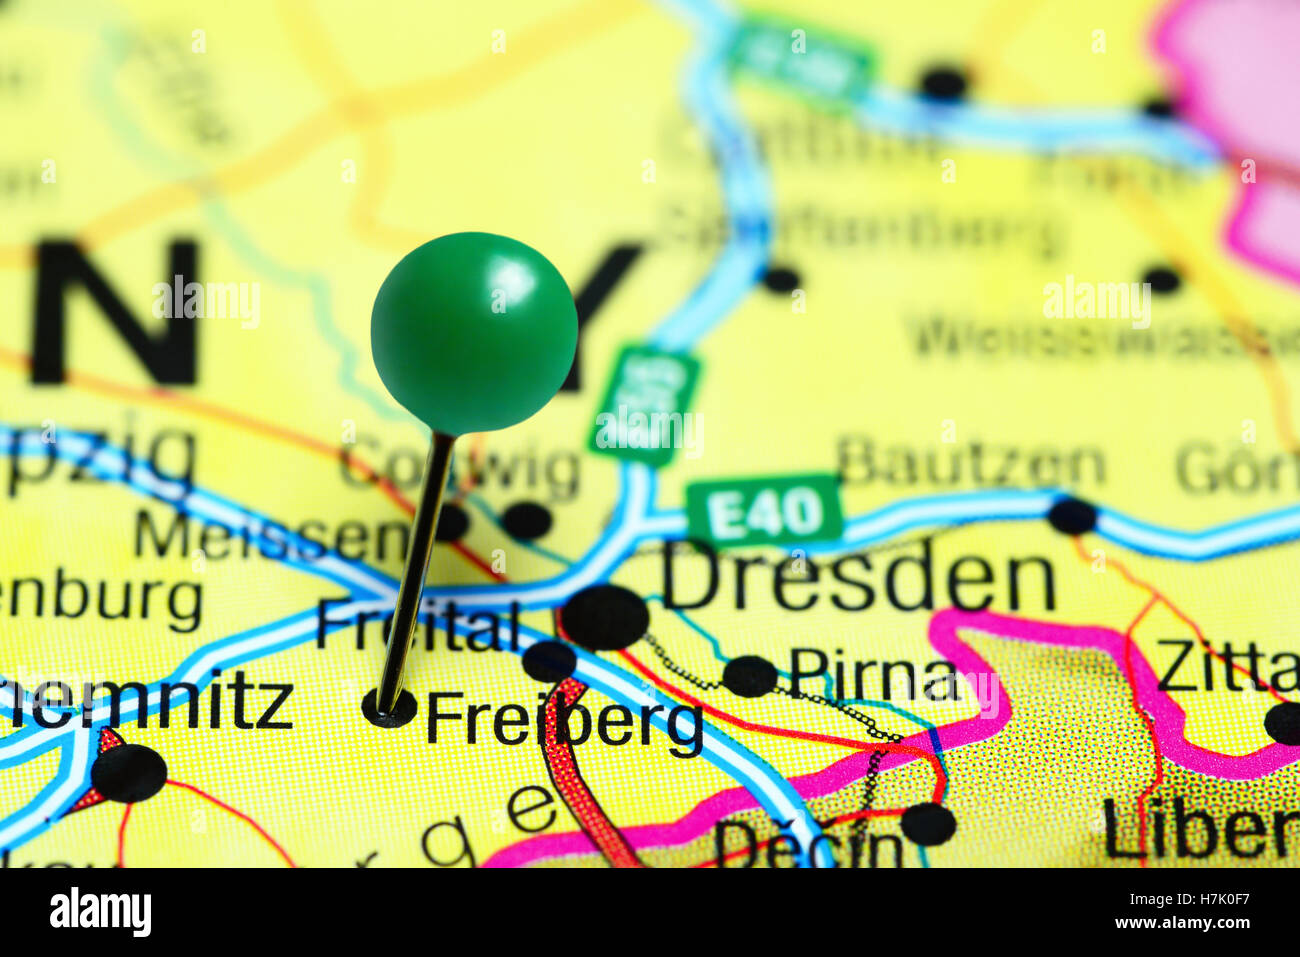 Freiberg pinned on a map of Germany - Stock Image